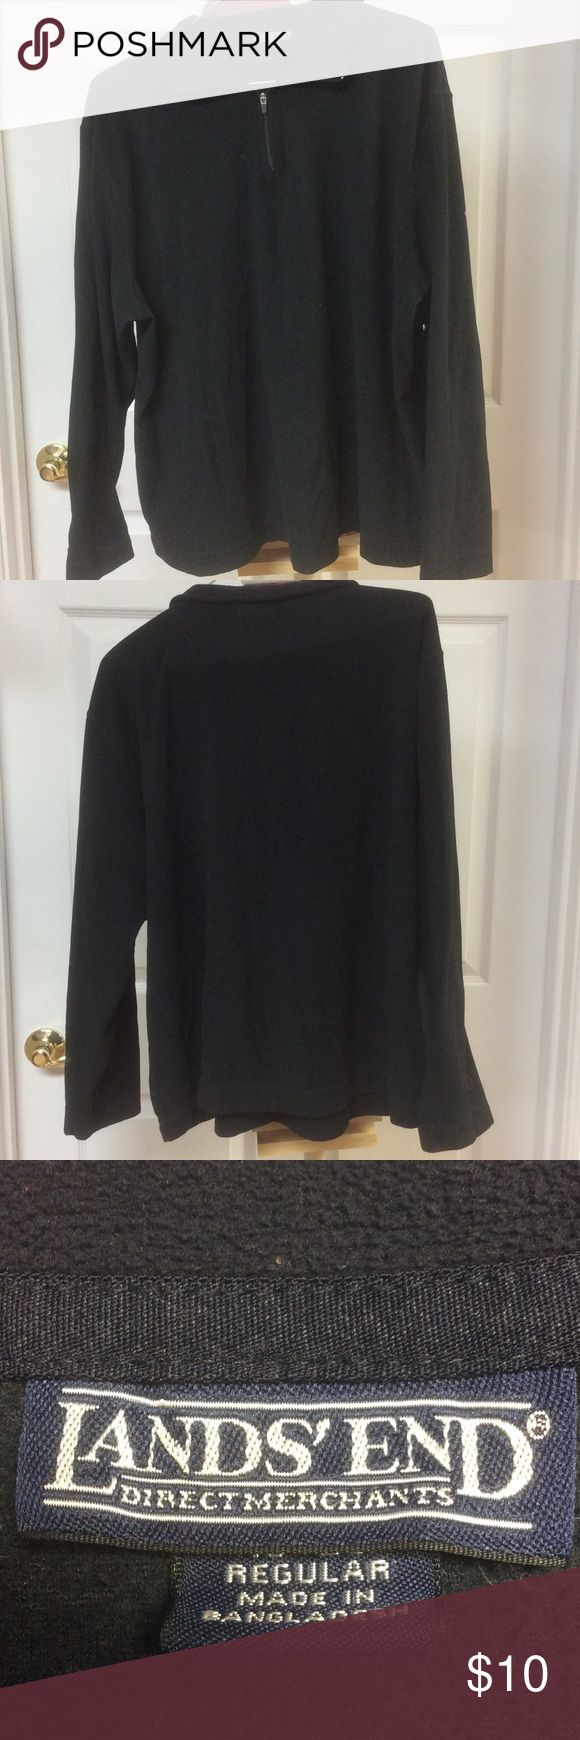 Lands End Black Fleece Pullover Sz XL 18-20 For sale we have a Lands end black pullover sweater with a navy collar size XL 18-20. Great shape no tears or stains. Lands' End Tops Sweatshirts & Hoodies